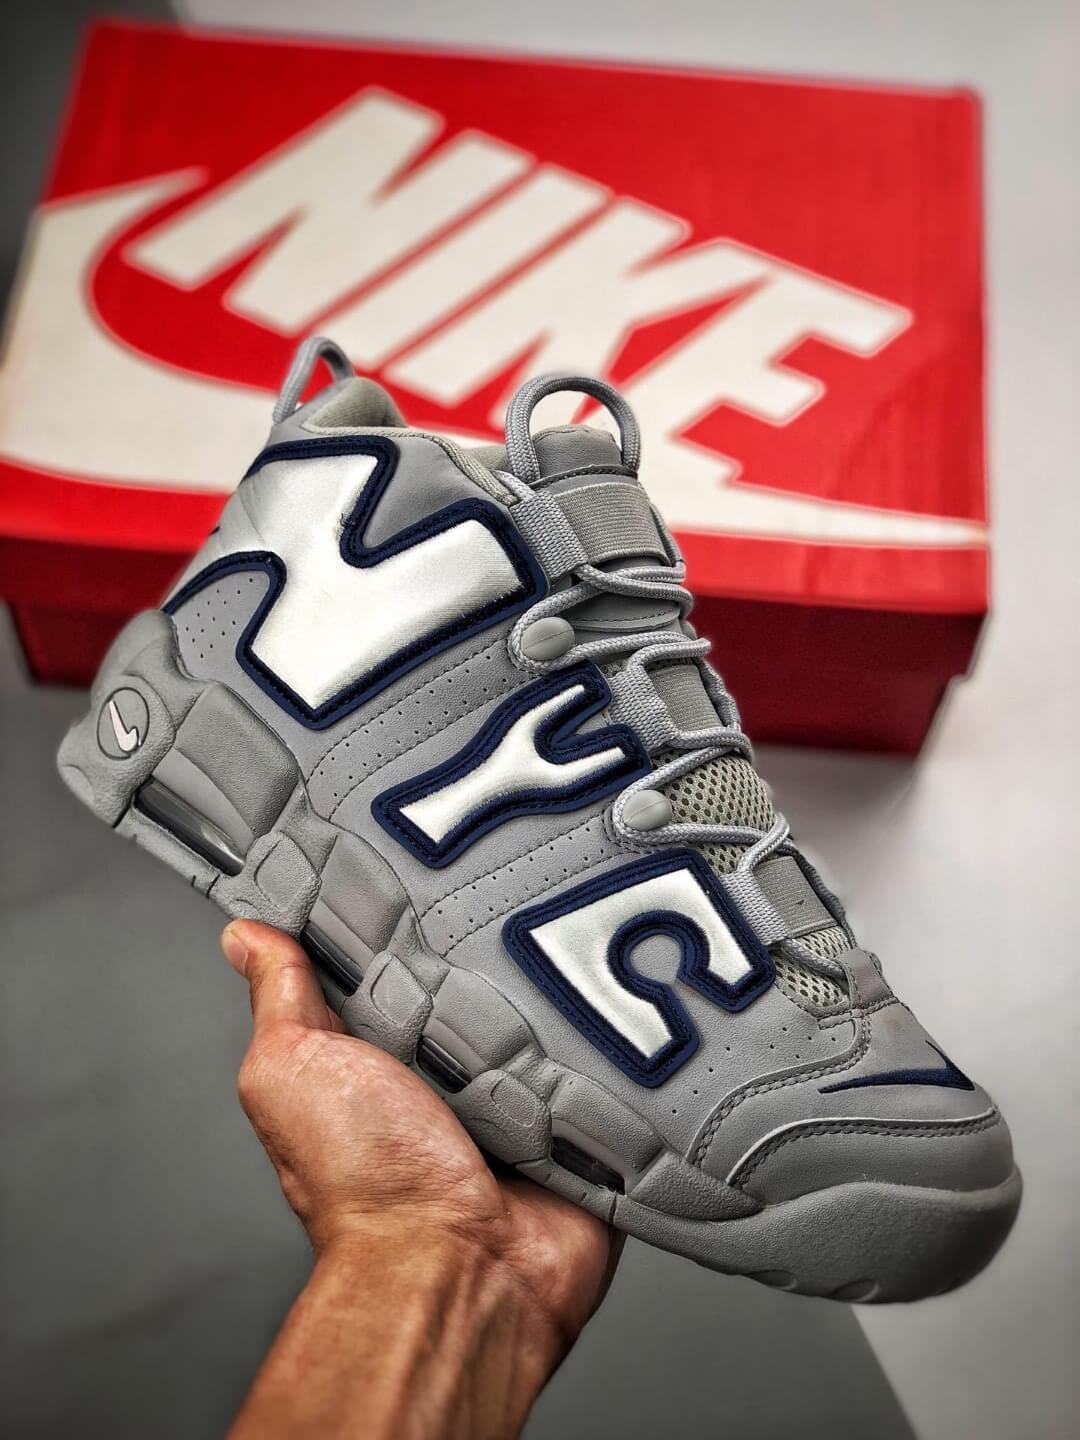 The Nike Air More Uptempo QS NYC Sneaker Limited Edition City Series Pack Grey Leather Upper Replica Shoes 01